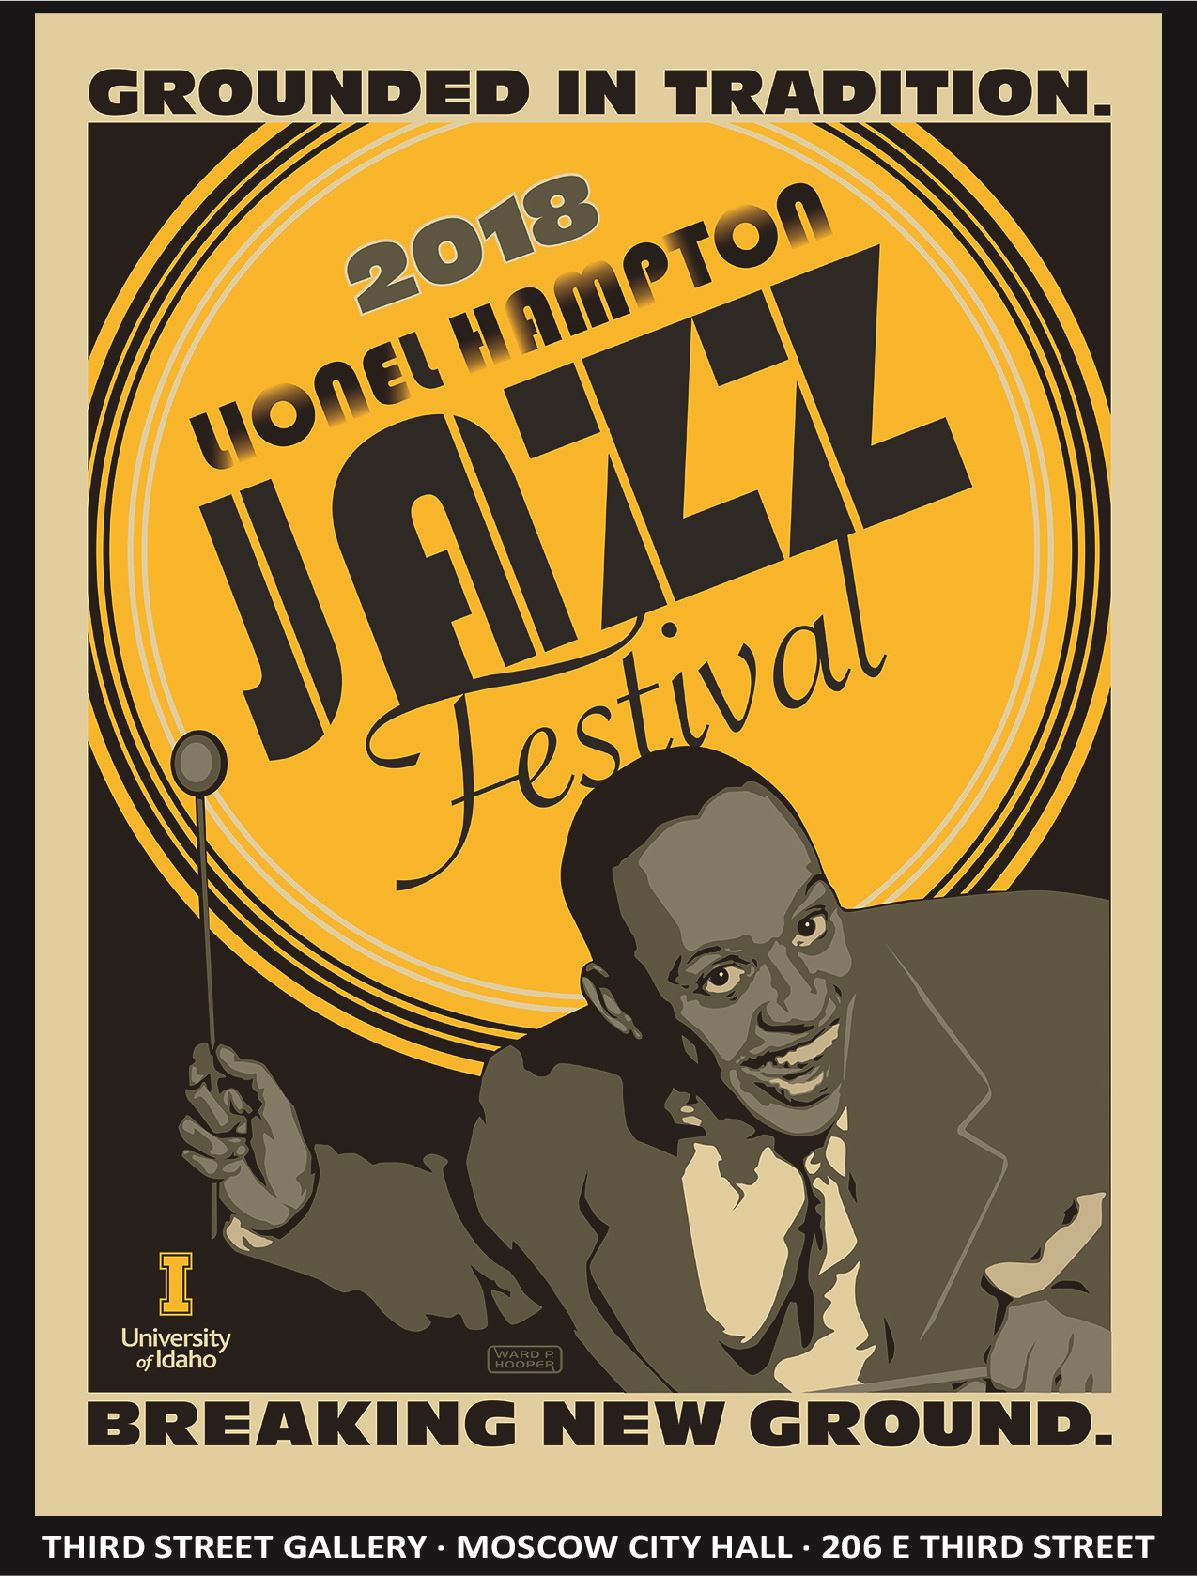 Promotional card for Third Street Gallery exhibit Lionel Hampton Jazz Festival depicting a graphical